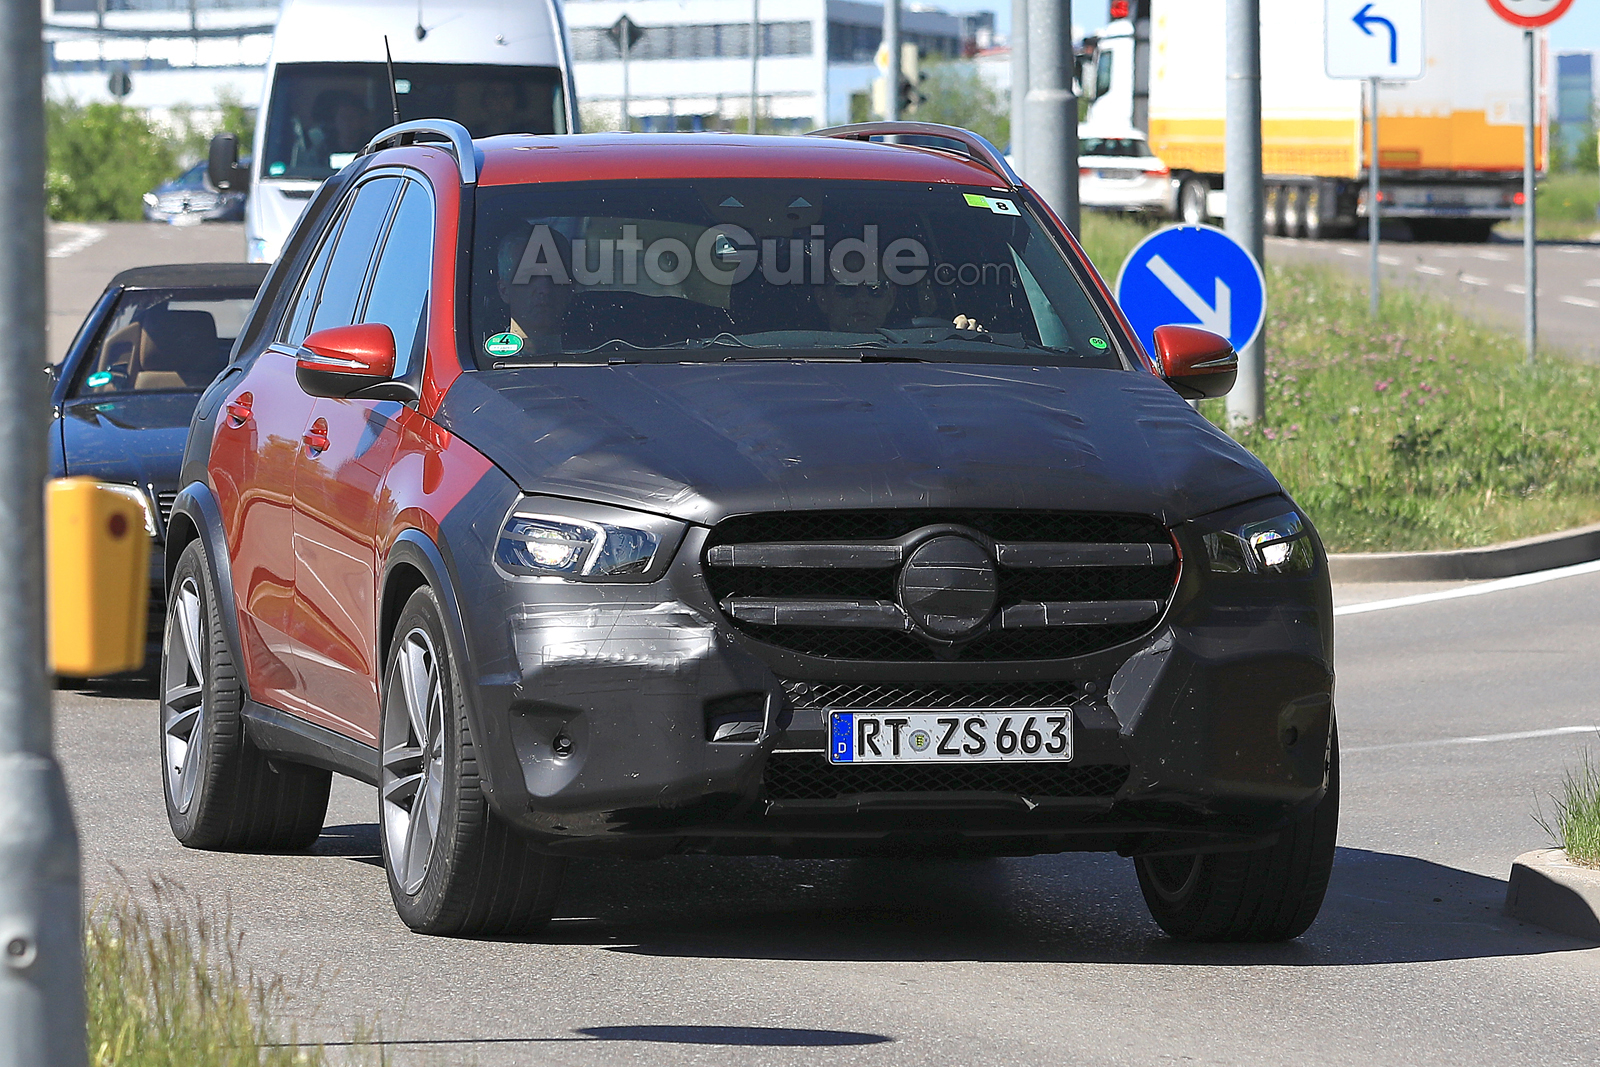 Mclaren X 1 >> 2019 Mercedes GLE Spied Looking Showroom Ready » AutoGuide.com News